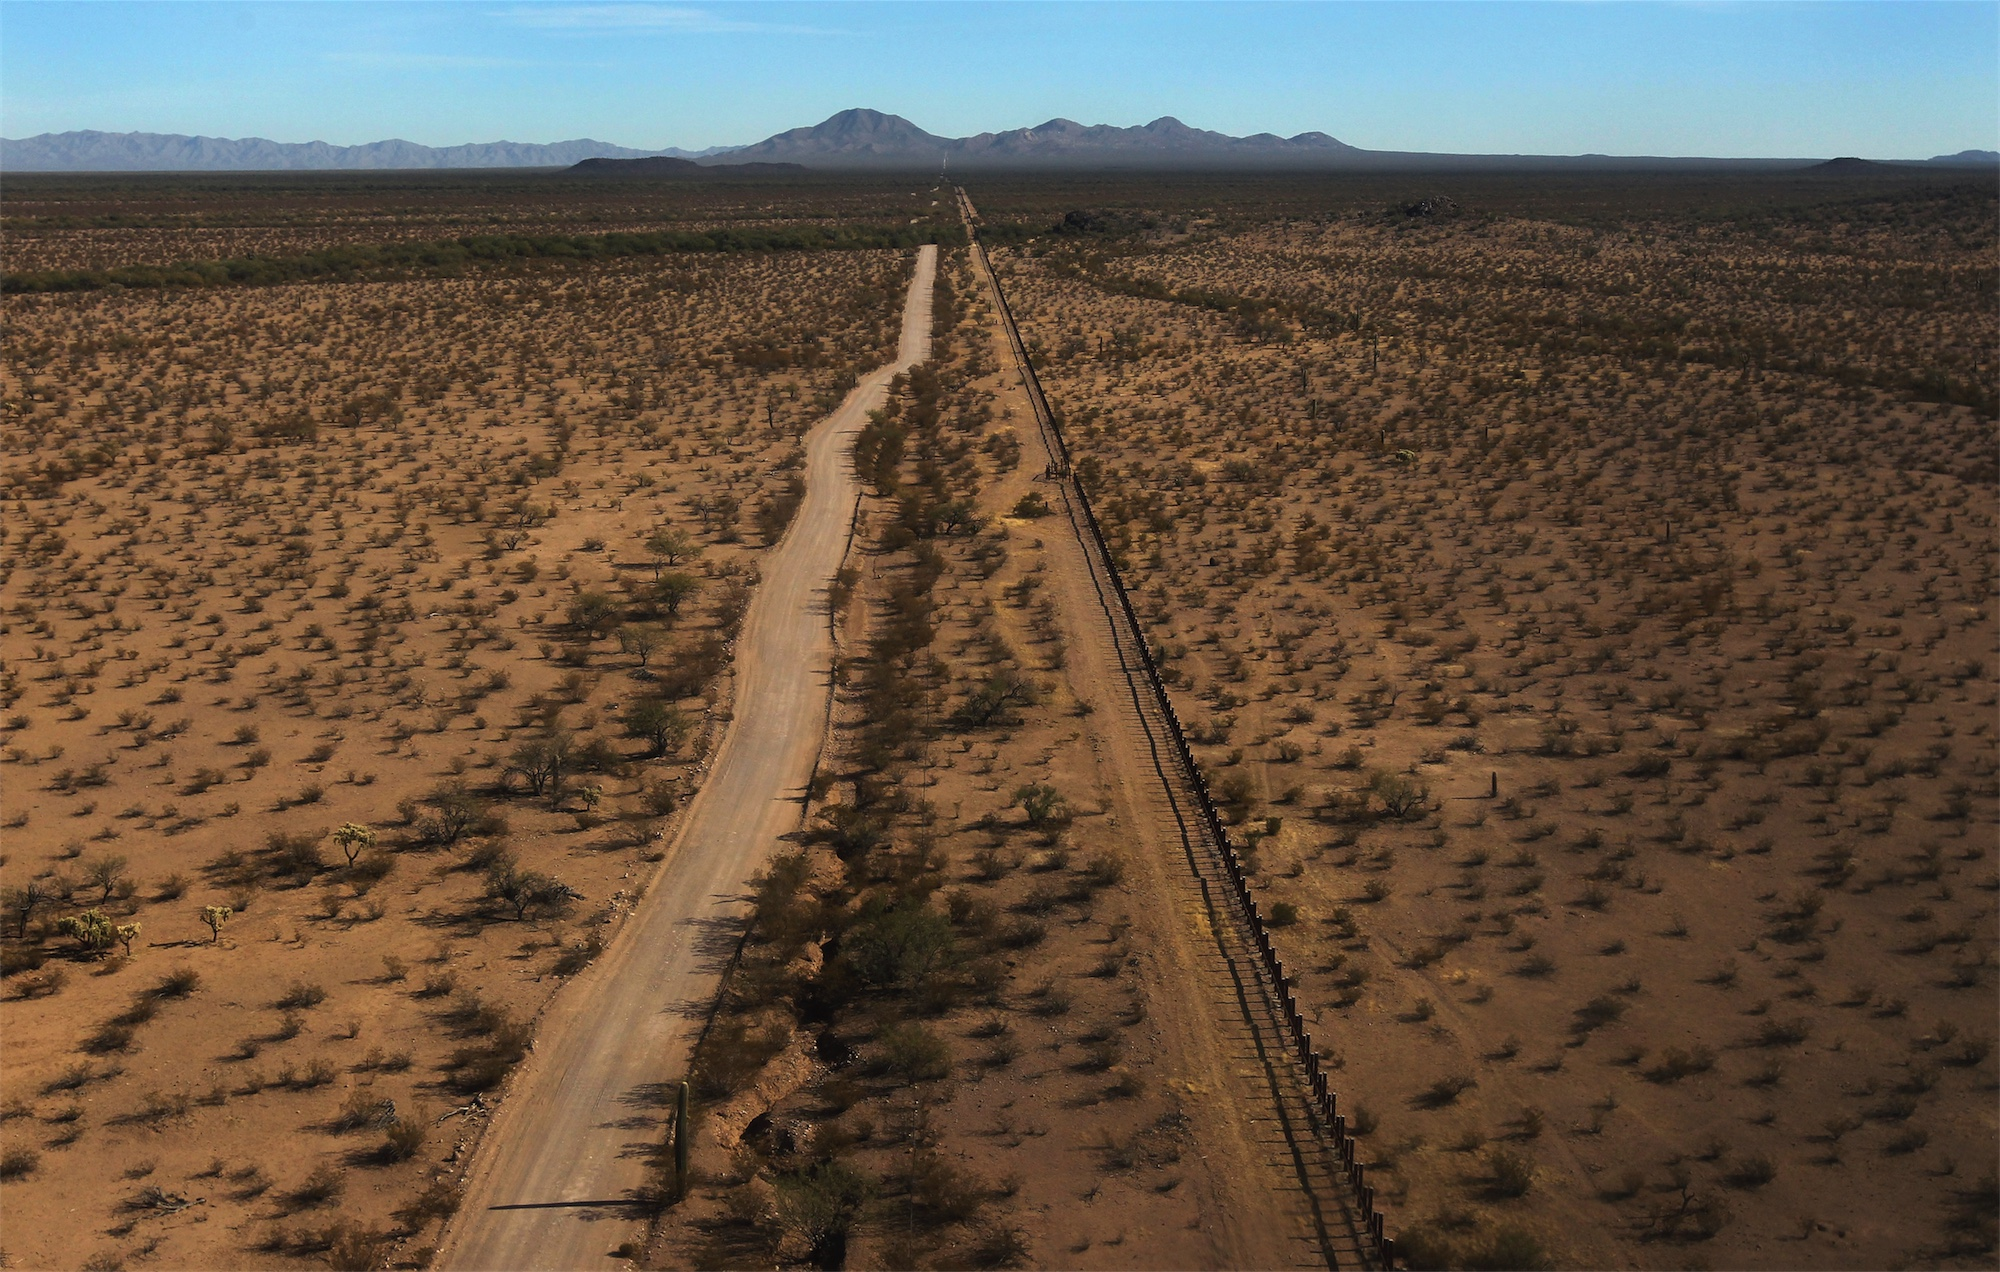 The U S Mexico Border Fence Through The Sonoran Desert In The Tohono O